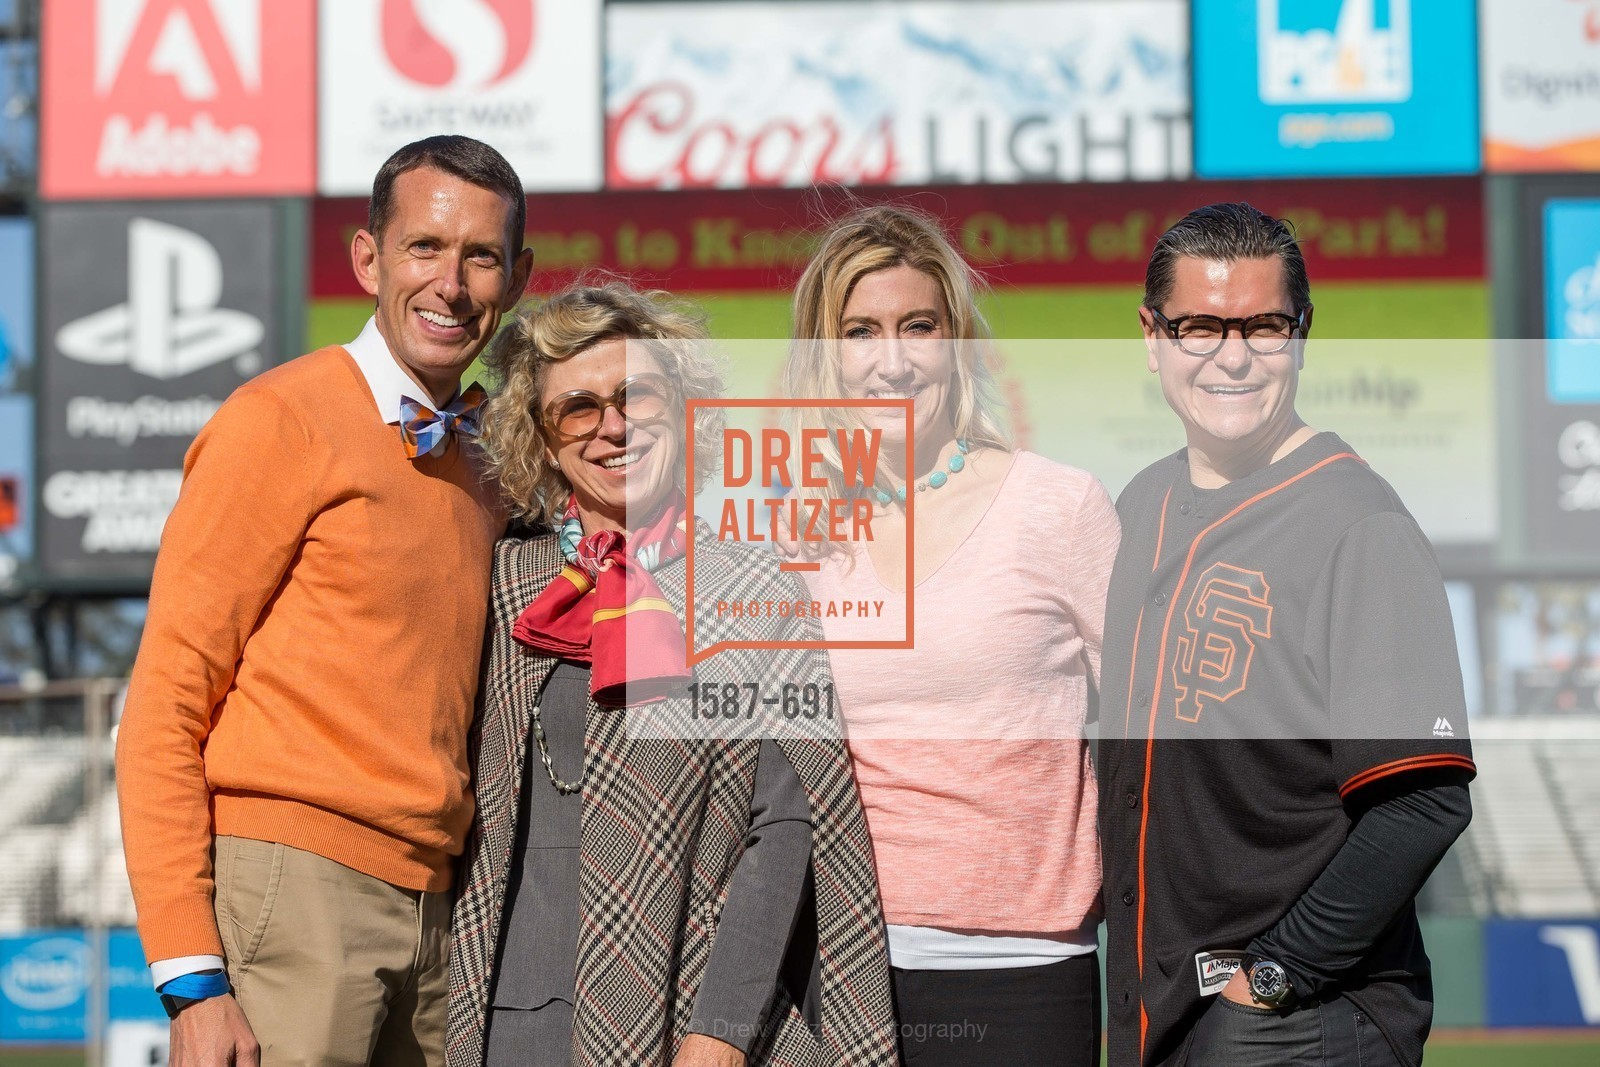 Markham Miller, Jennifer Kiss, Colleen McGuinn, Christopher Meza, ST. FRANCIS FOUNDATION'S Knock It Out of the Park, US, June 4th, 2015,Drew Altizer, Drew Altizer Photography, full-service agency, private events, San Francisco photographer, photographer california